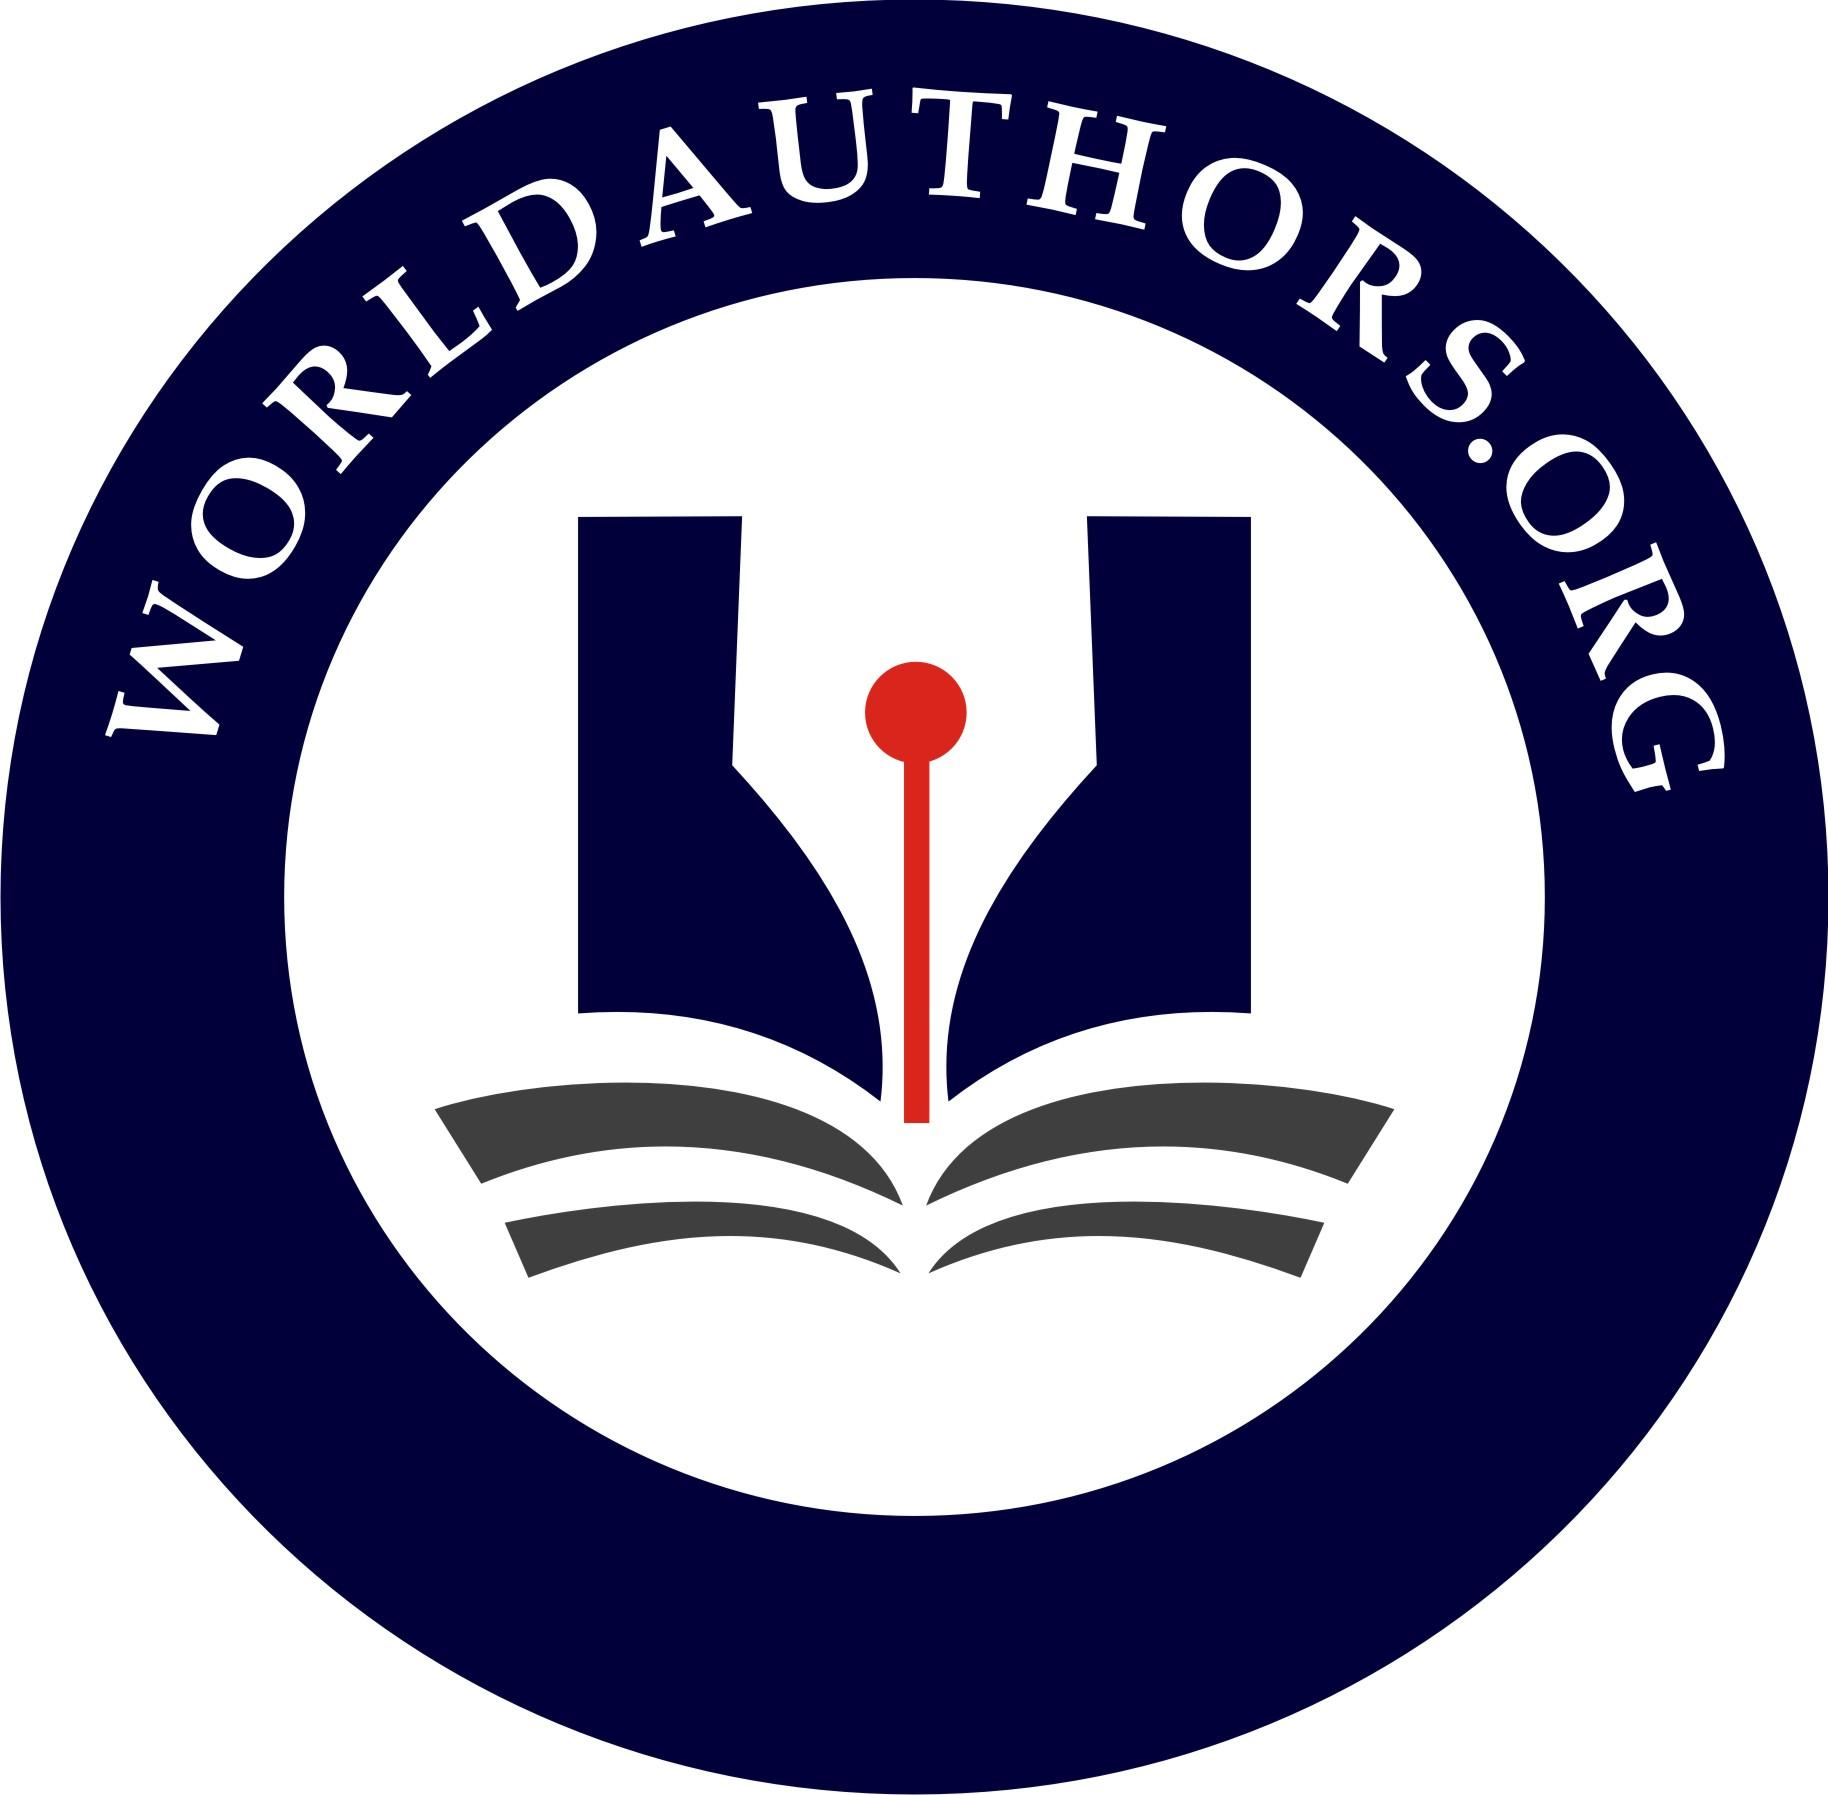 Avatar - World Authors Org